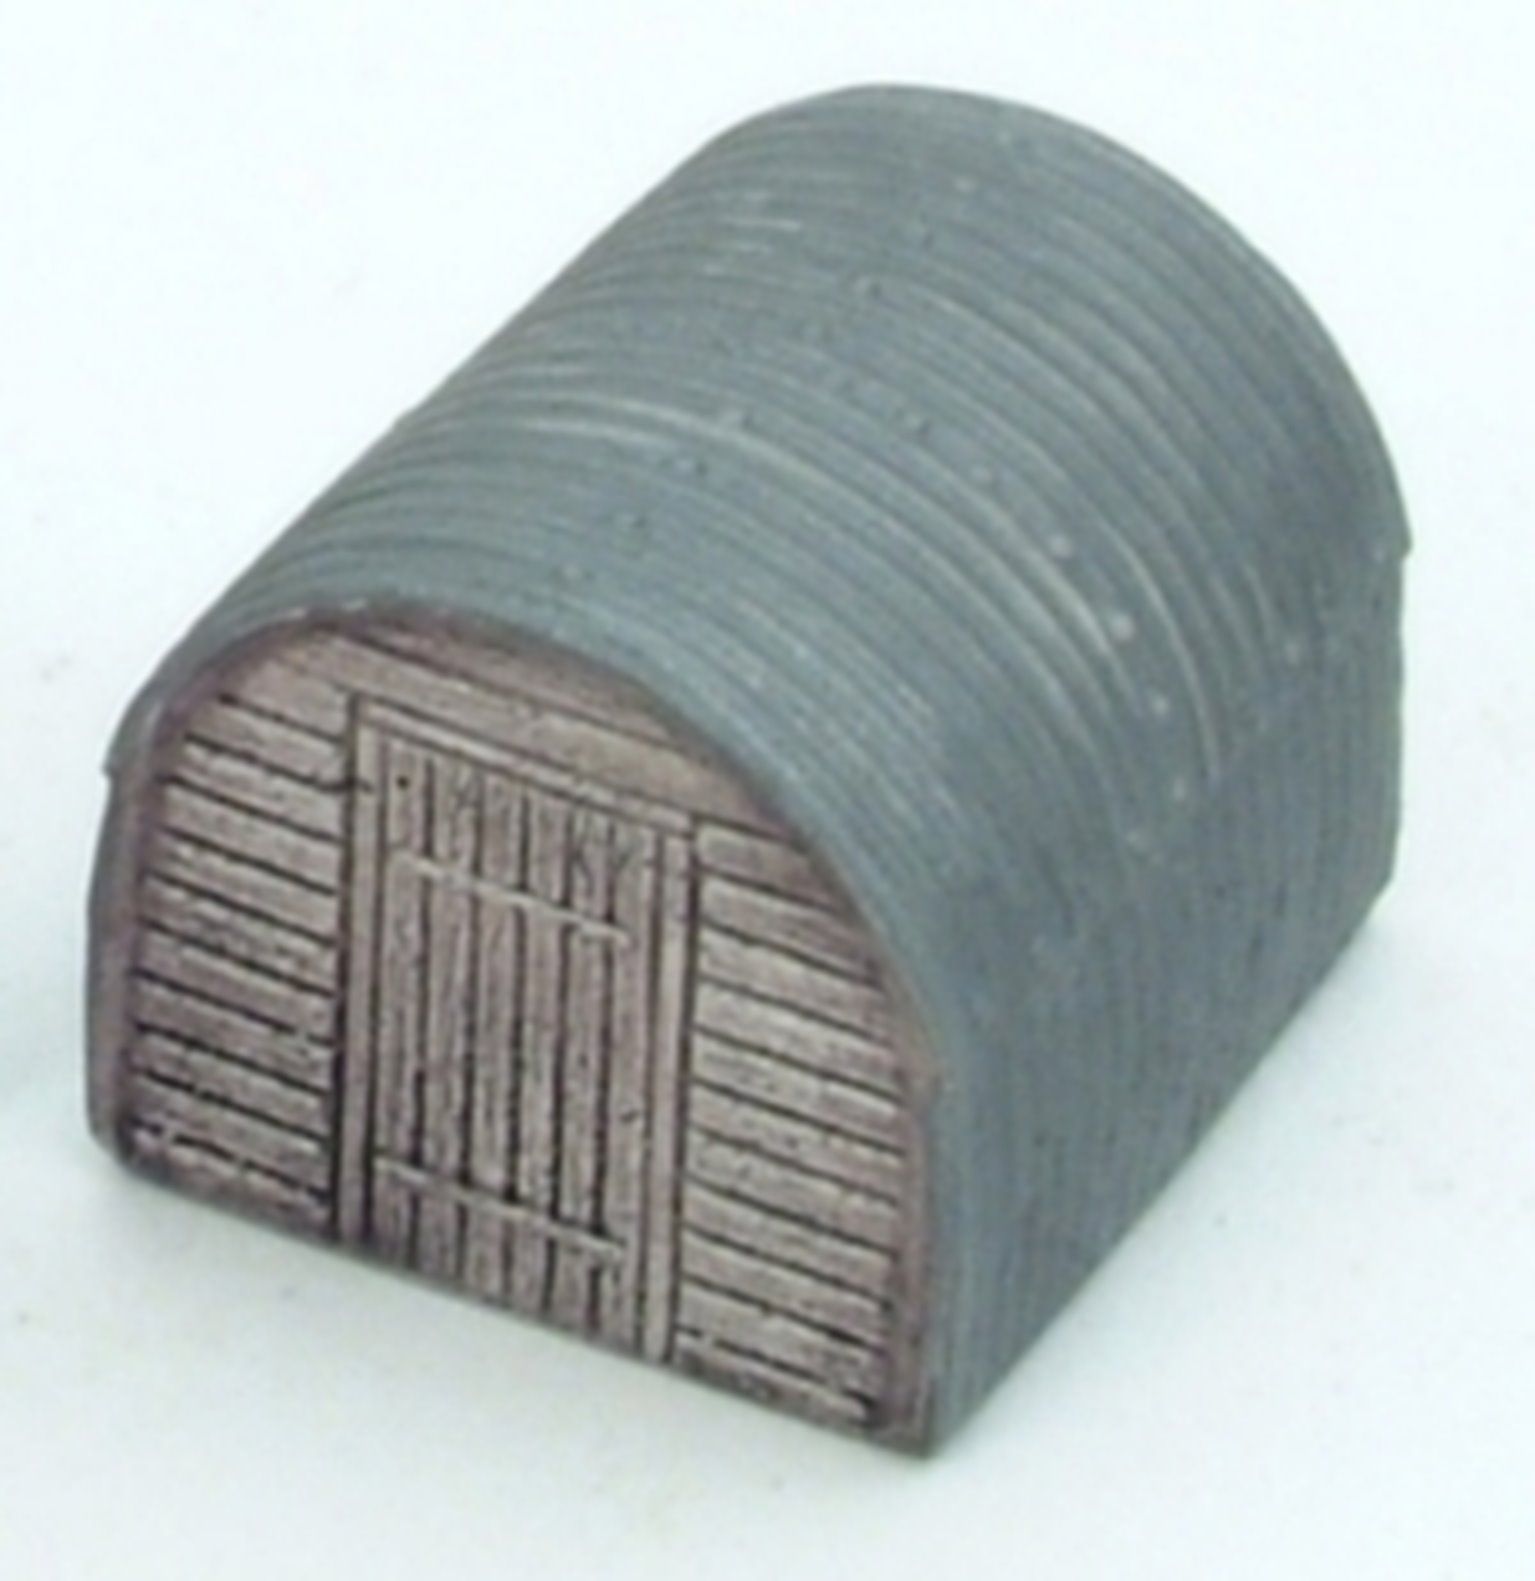 Anderson Shelter (corrugated iron shed) wooden ends